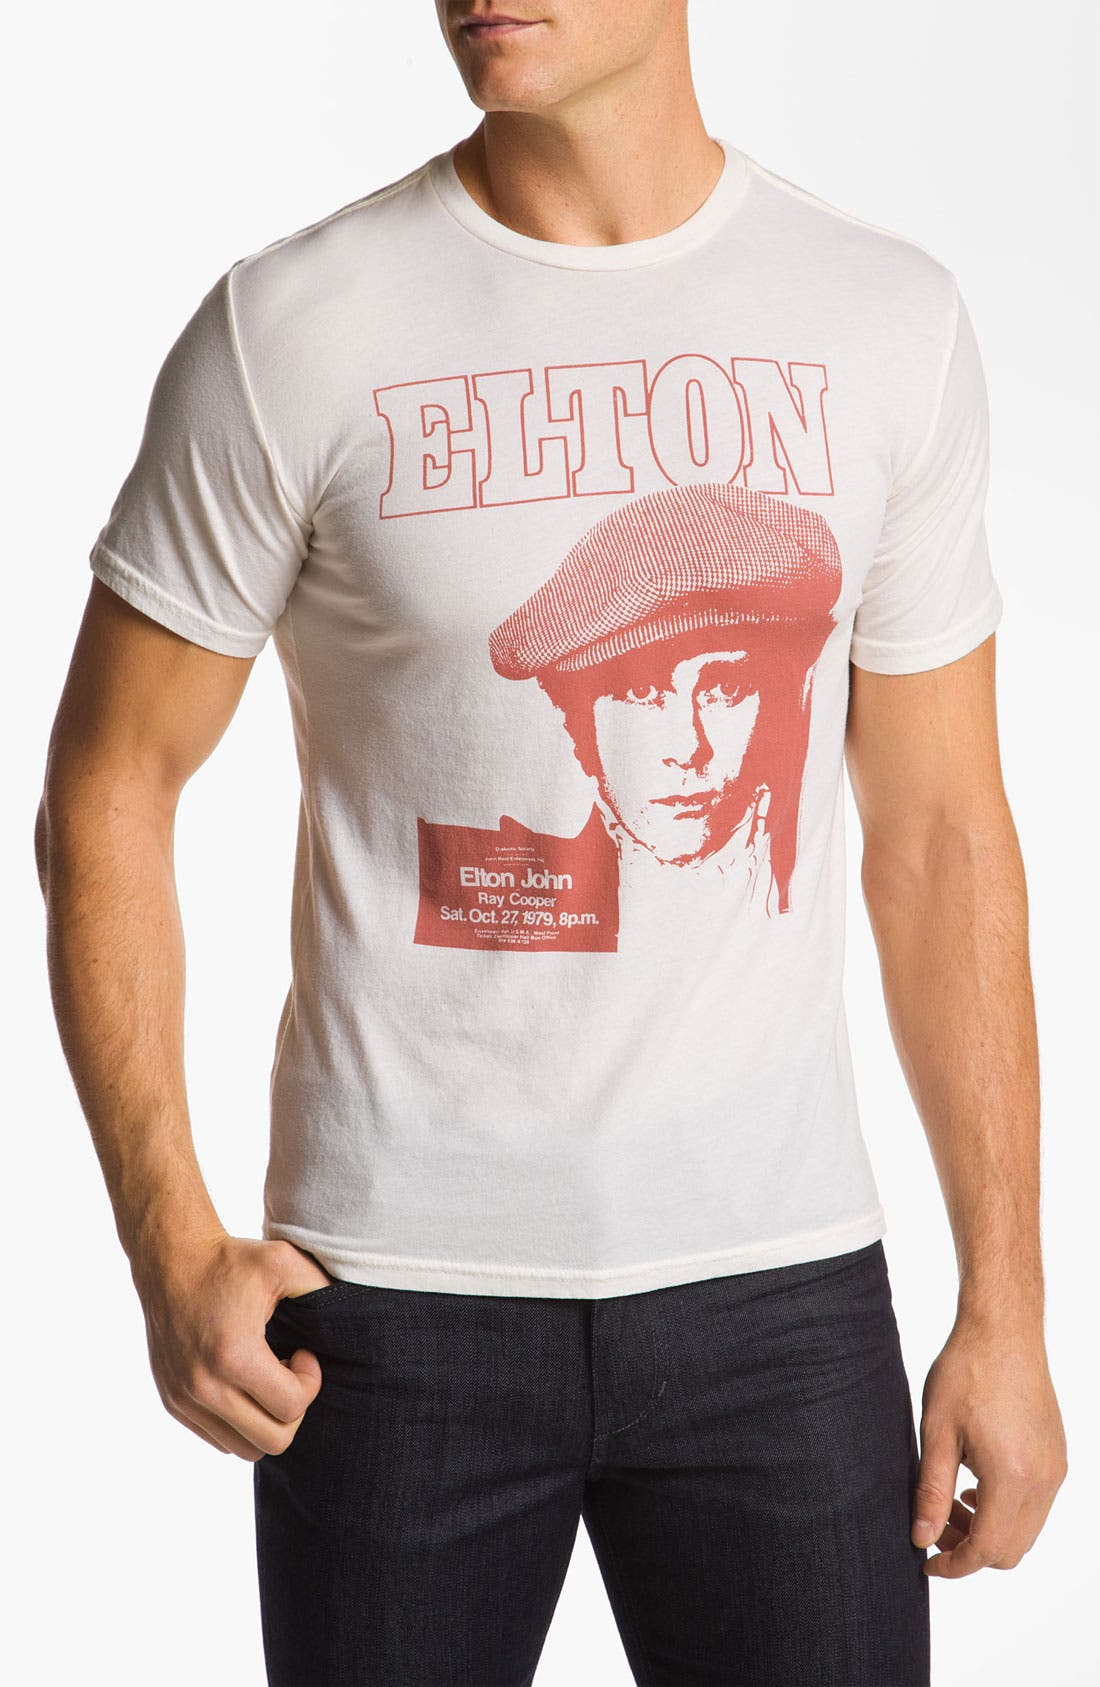 Alternate Image 1 Selected - Chaser 'News Boy Elton John' T-Shirt